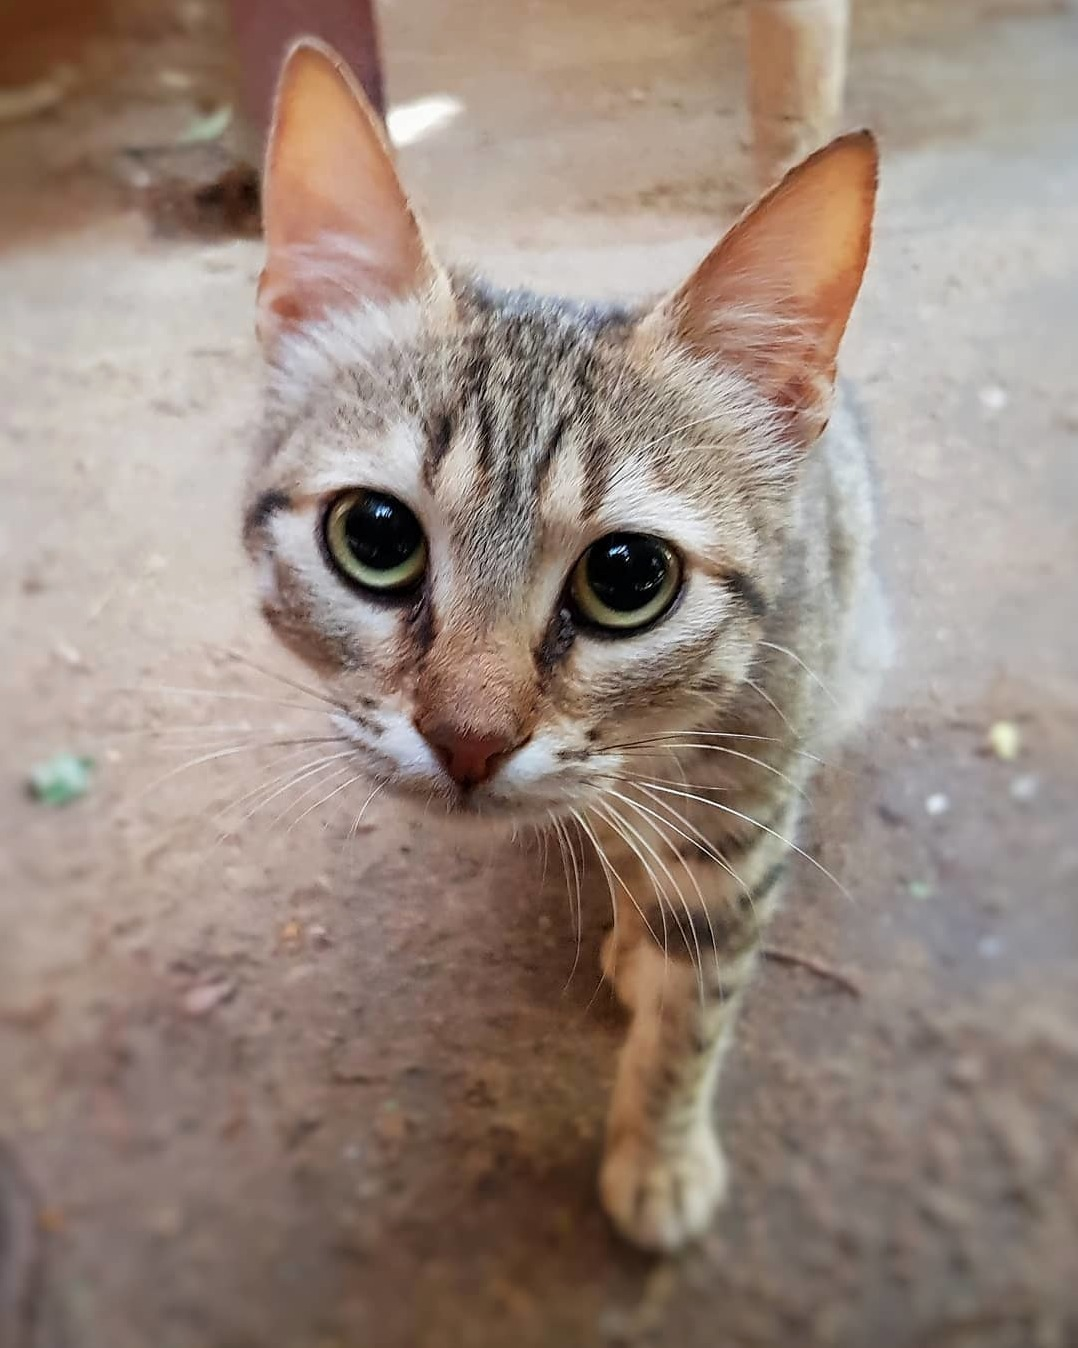 A beautiful feline who came to say hello whilst i was working in egypt earlier this year